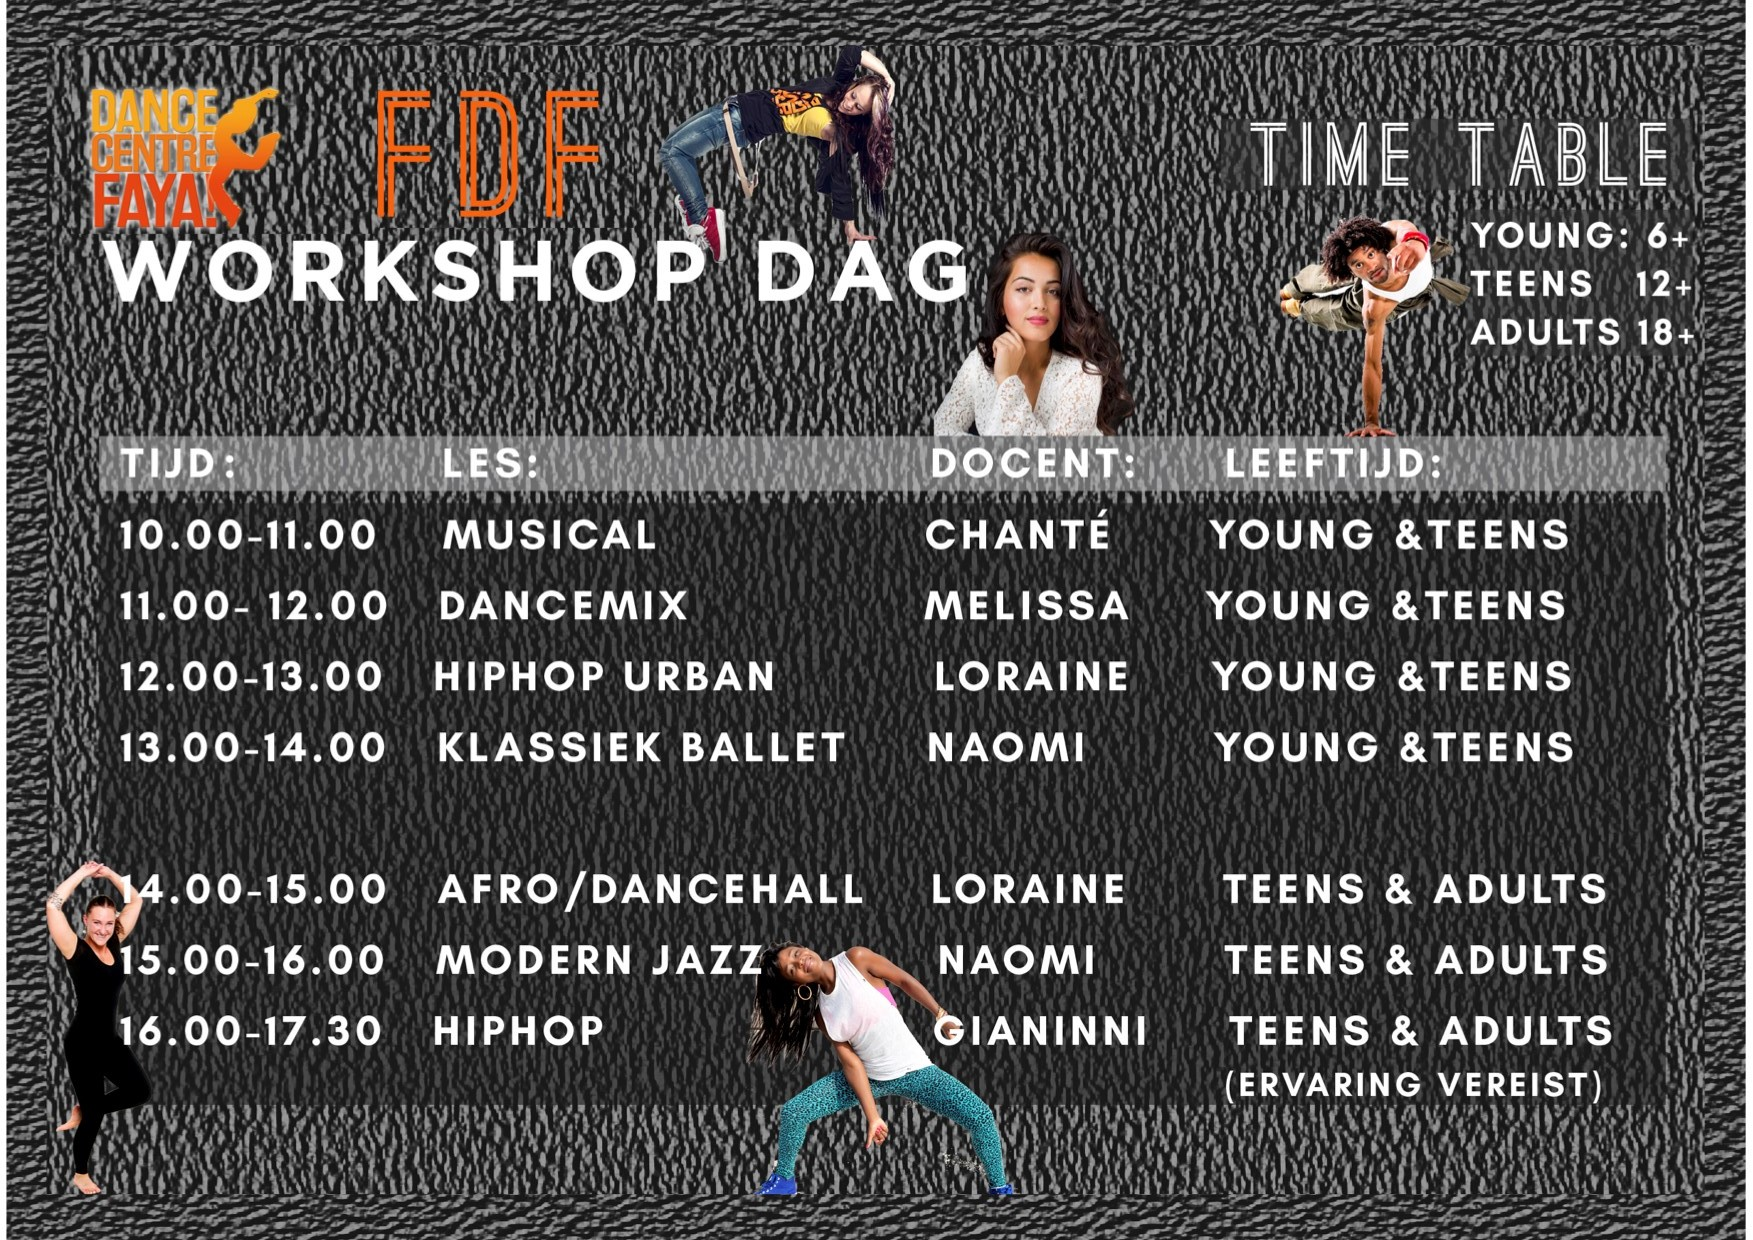 workshopdag timetable